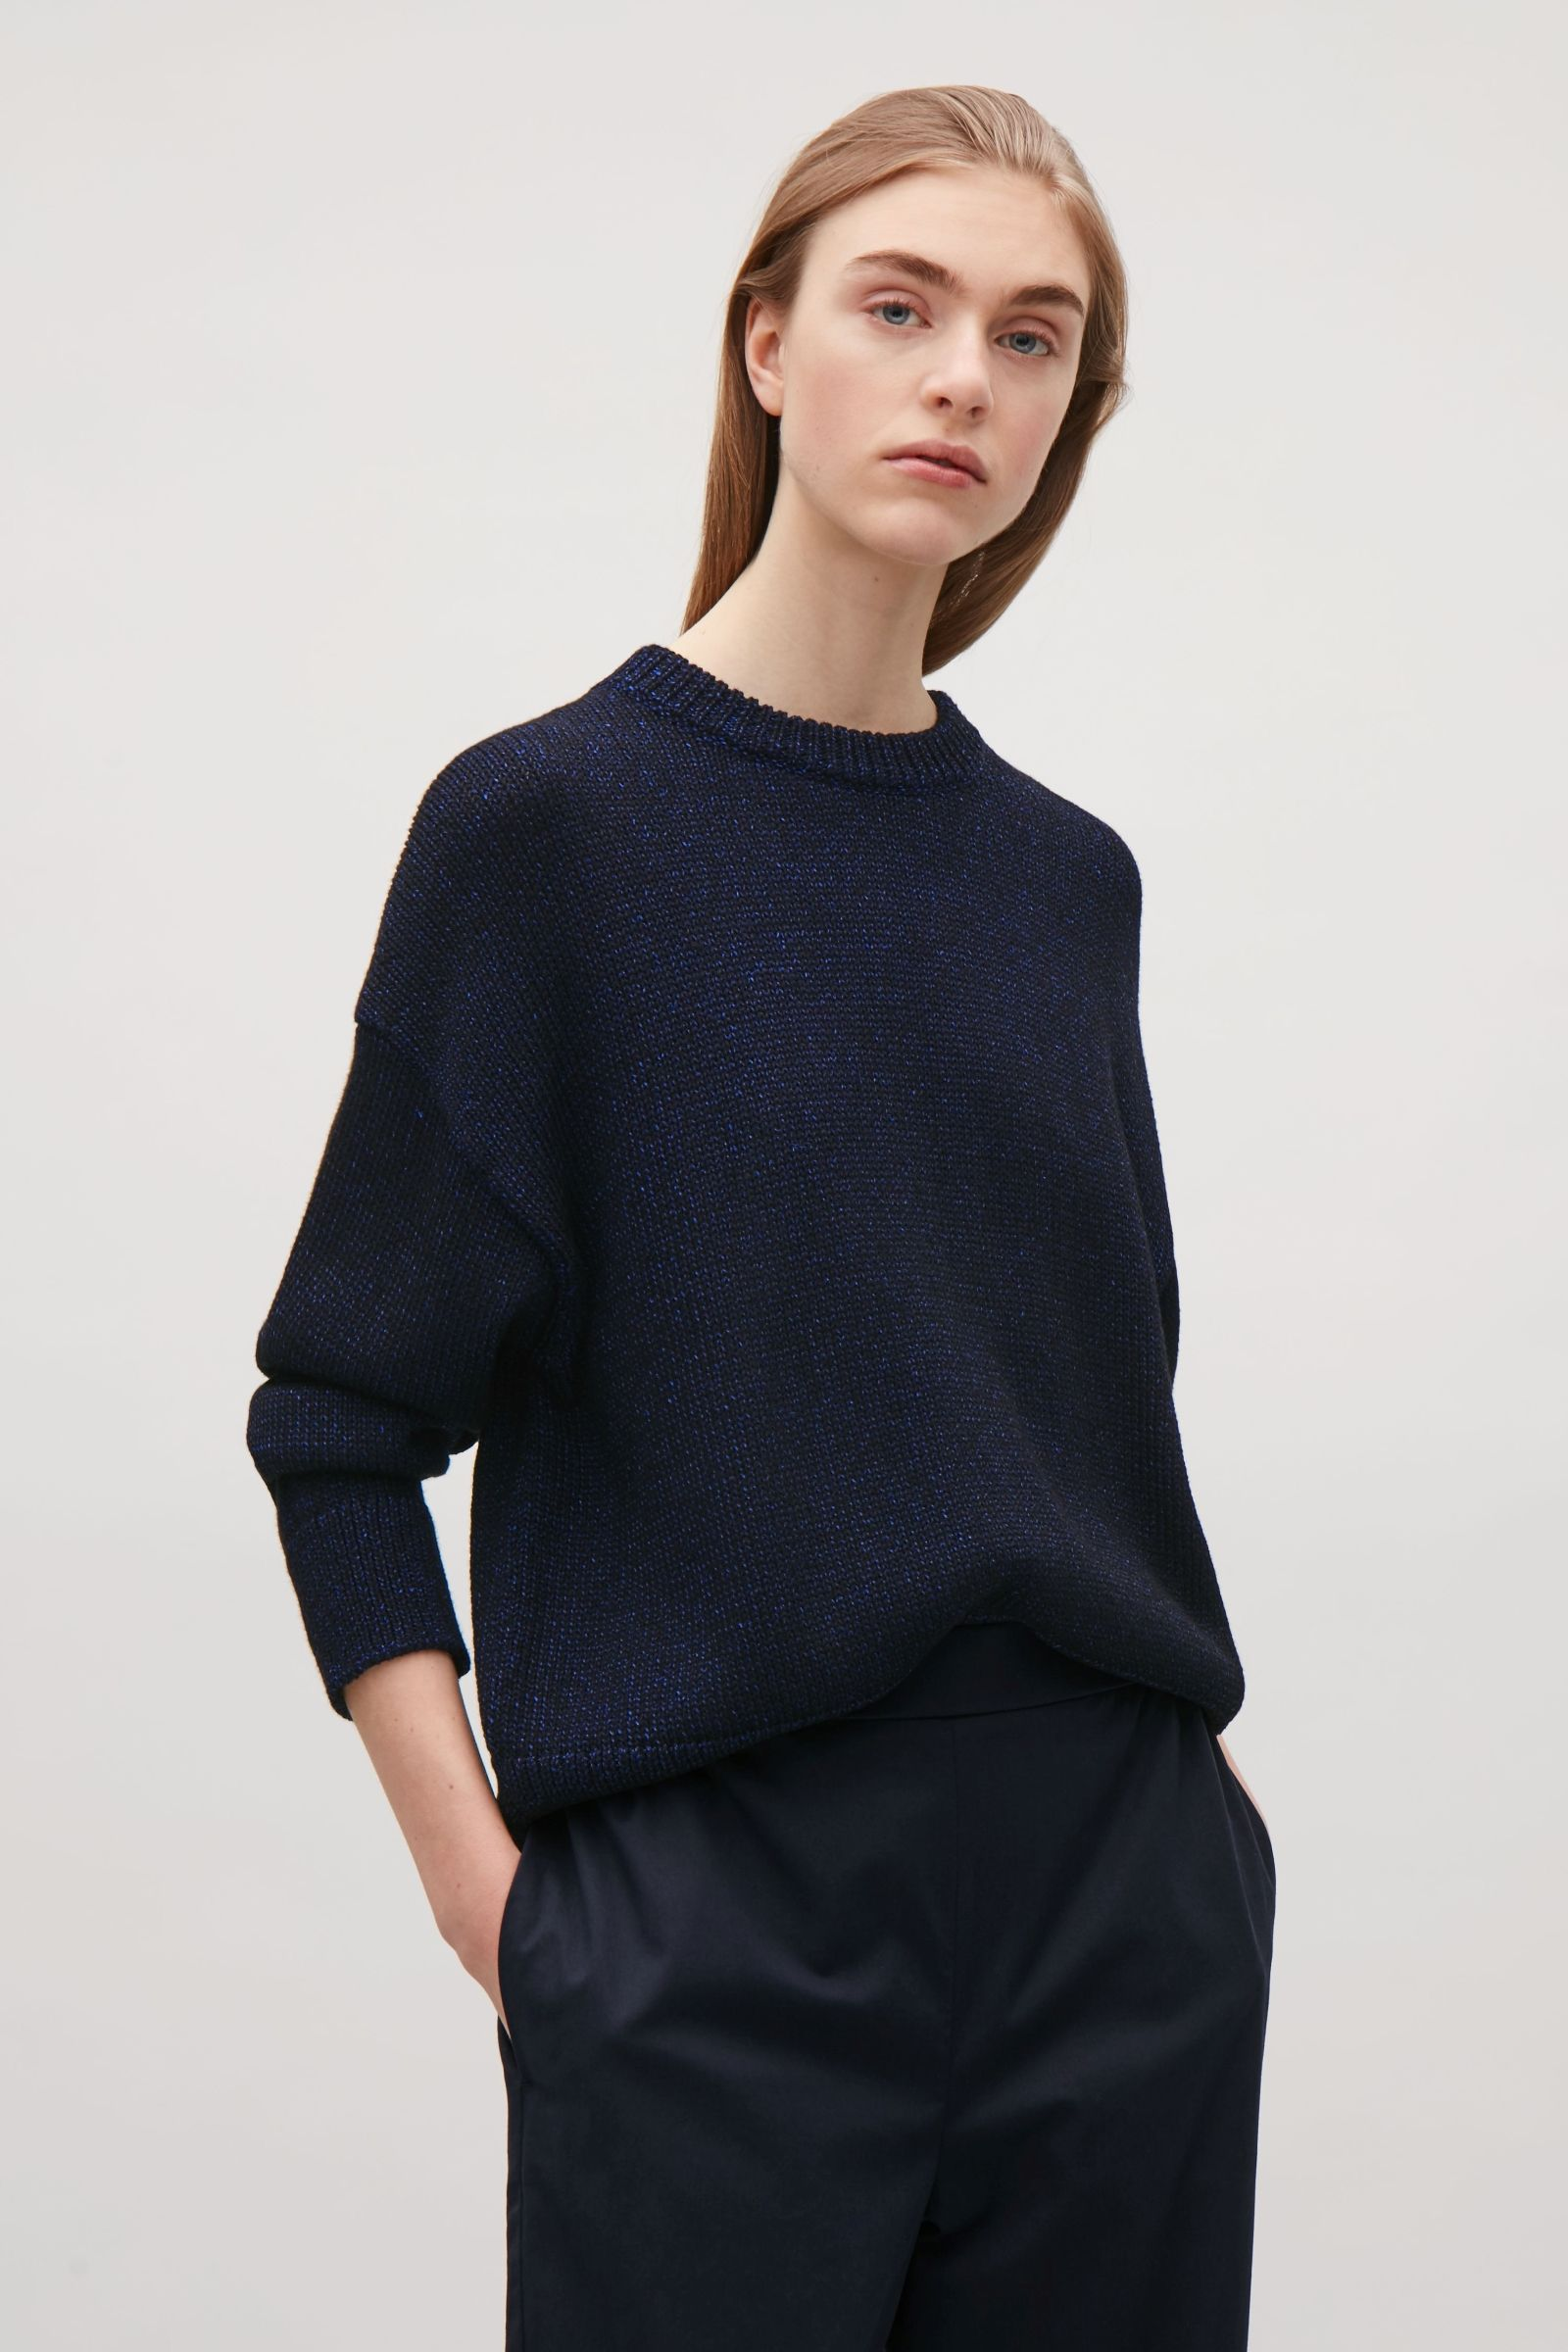 COS image 4 of Dropped shoulder knit jumper in Dark Blue  4e3f14c20